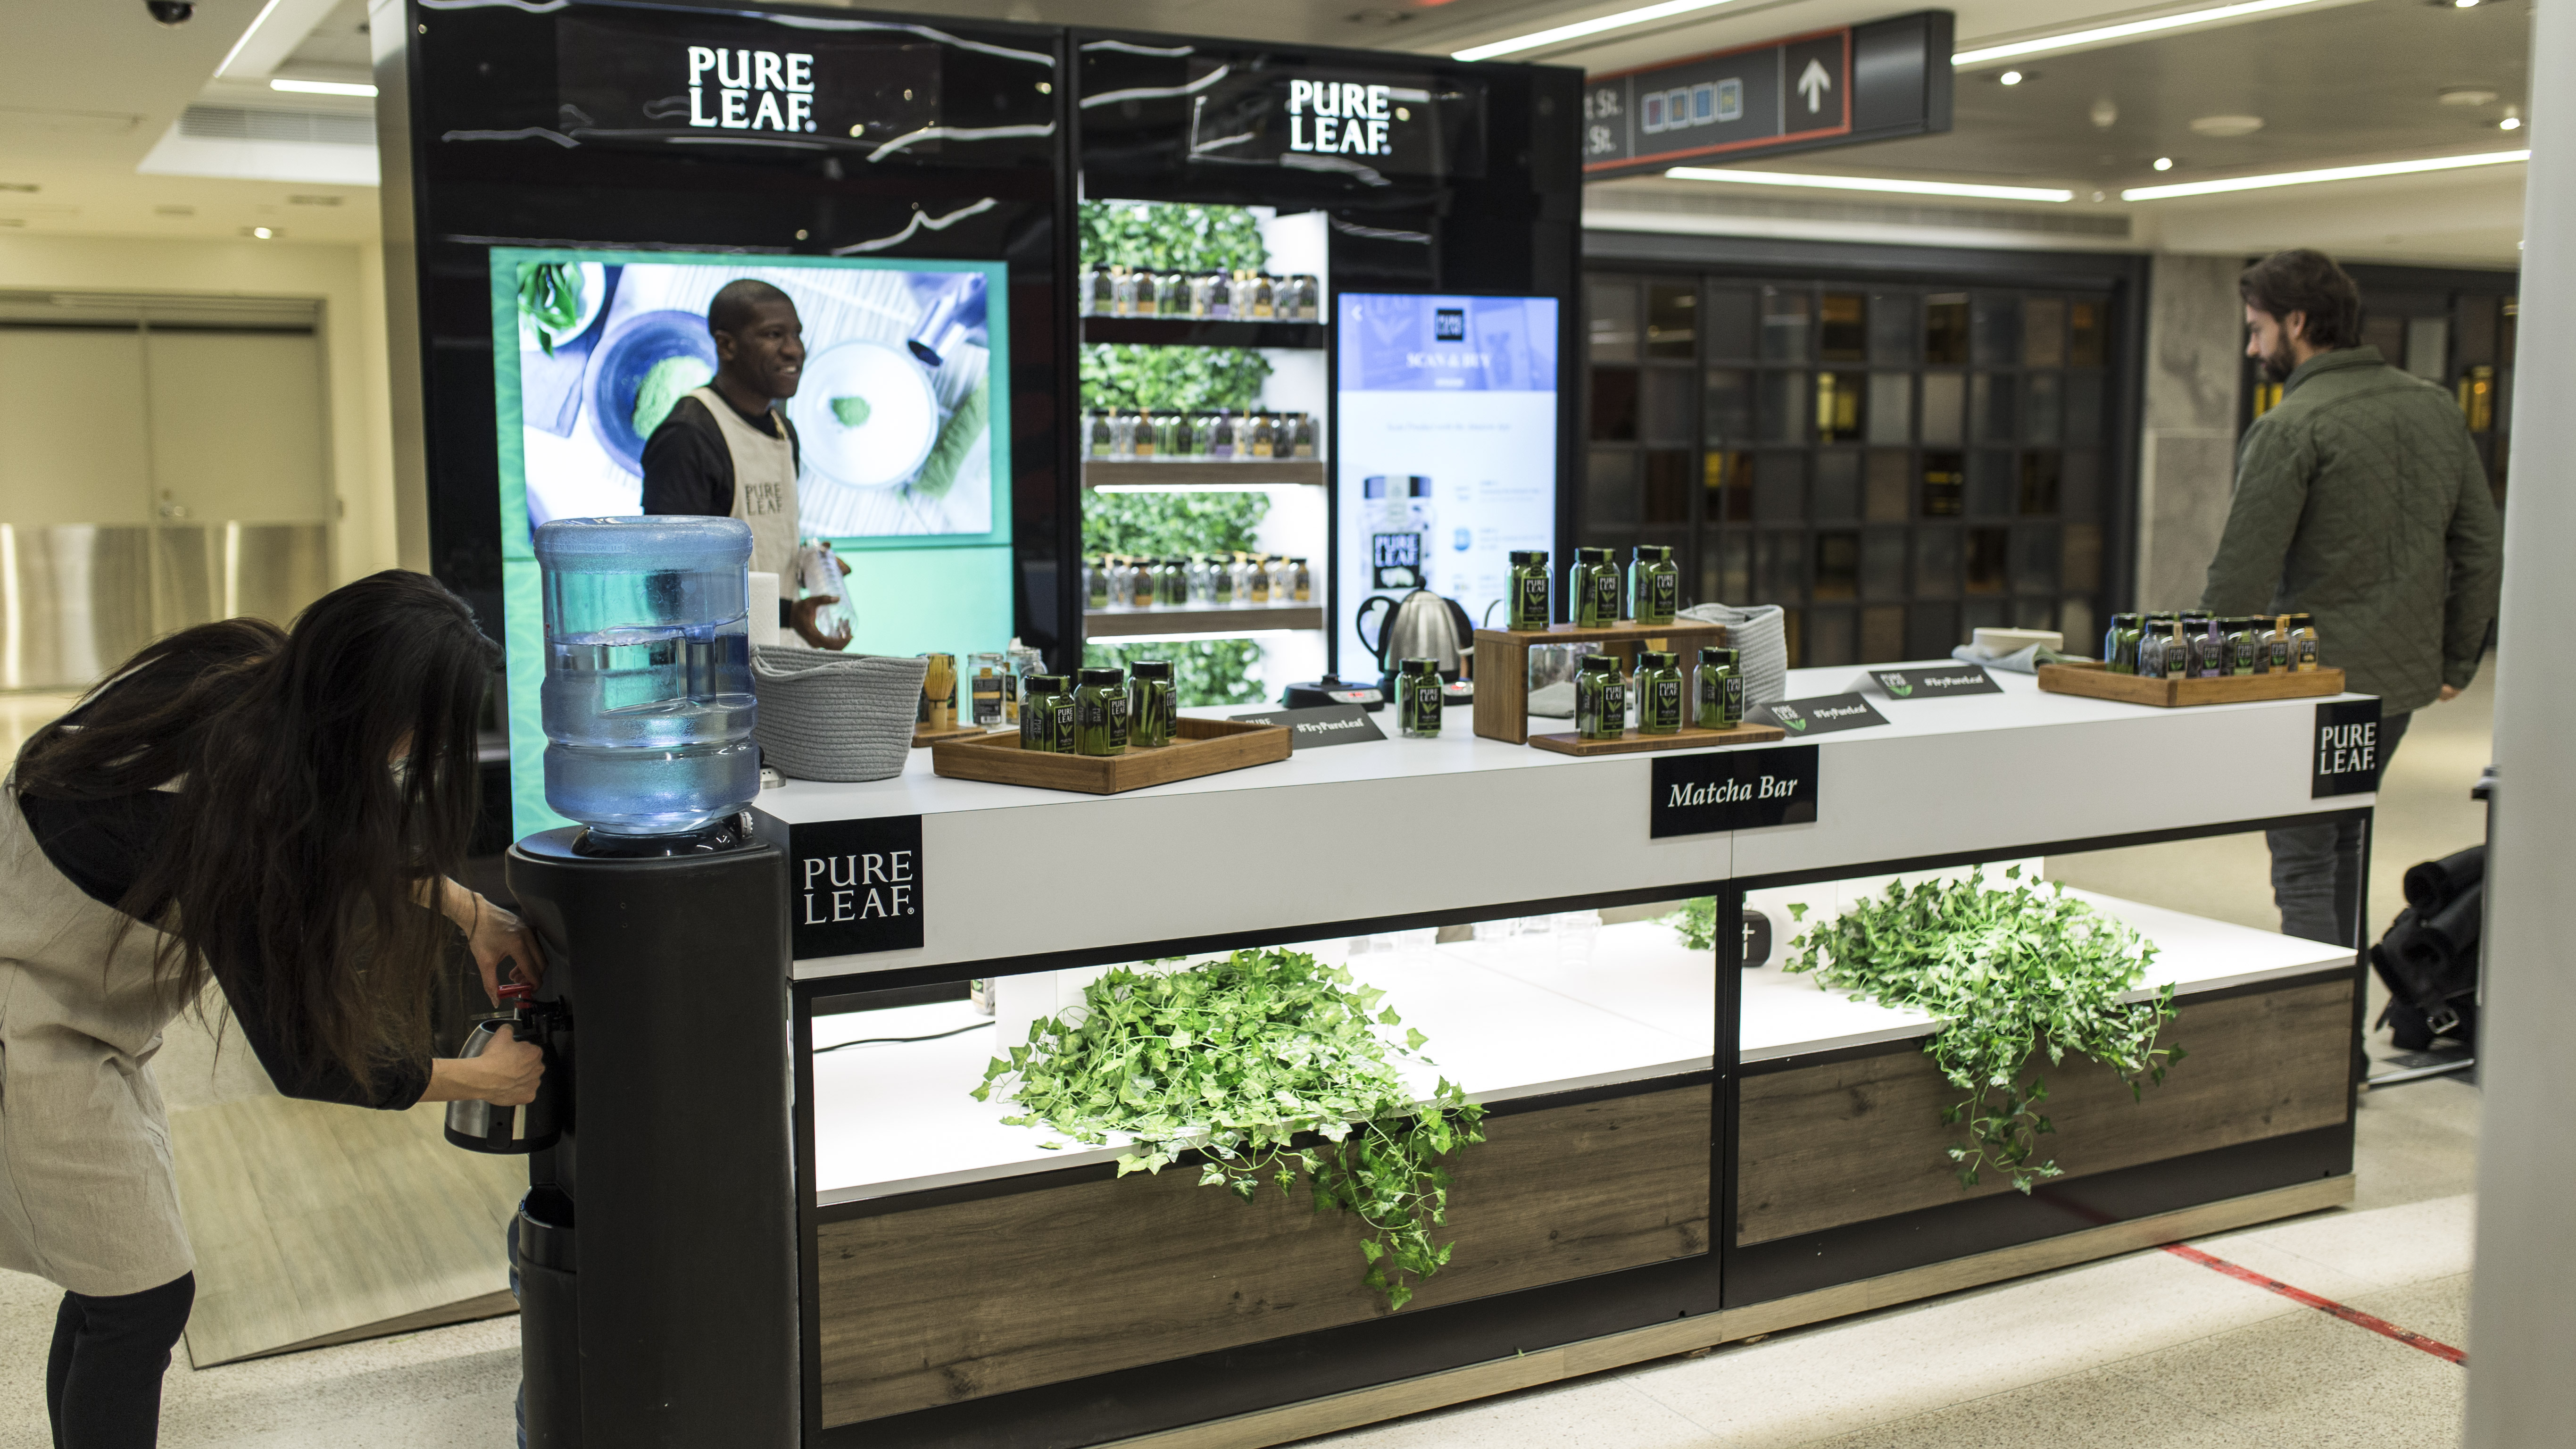 Watch how Pure Leaf's brand was brought to life through a pop-up